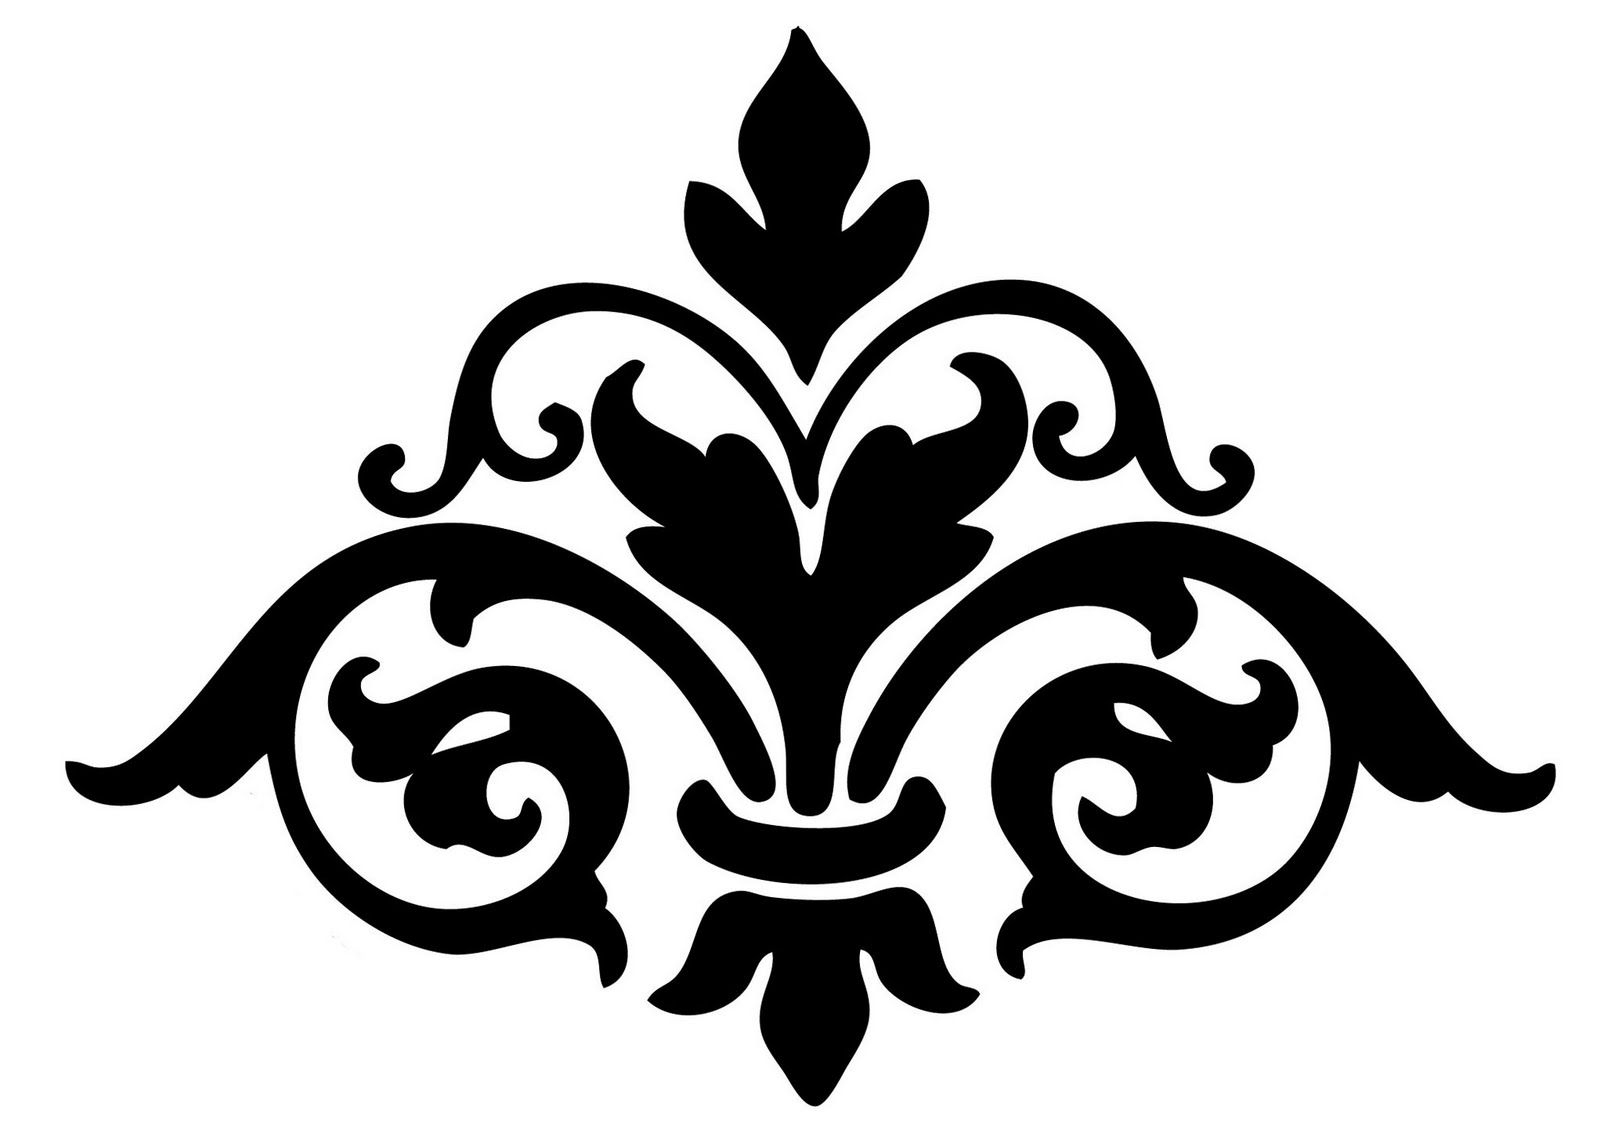 Damask Cliparts | Templates & Silhouettes | Stencils, Printable - Damask Stencil Printable Free